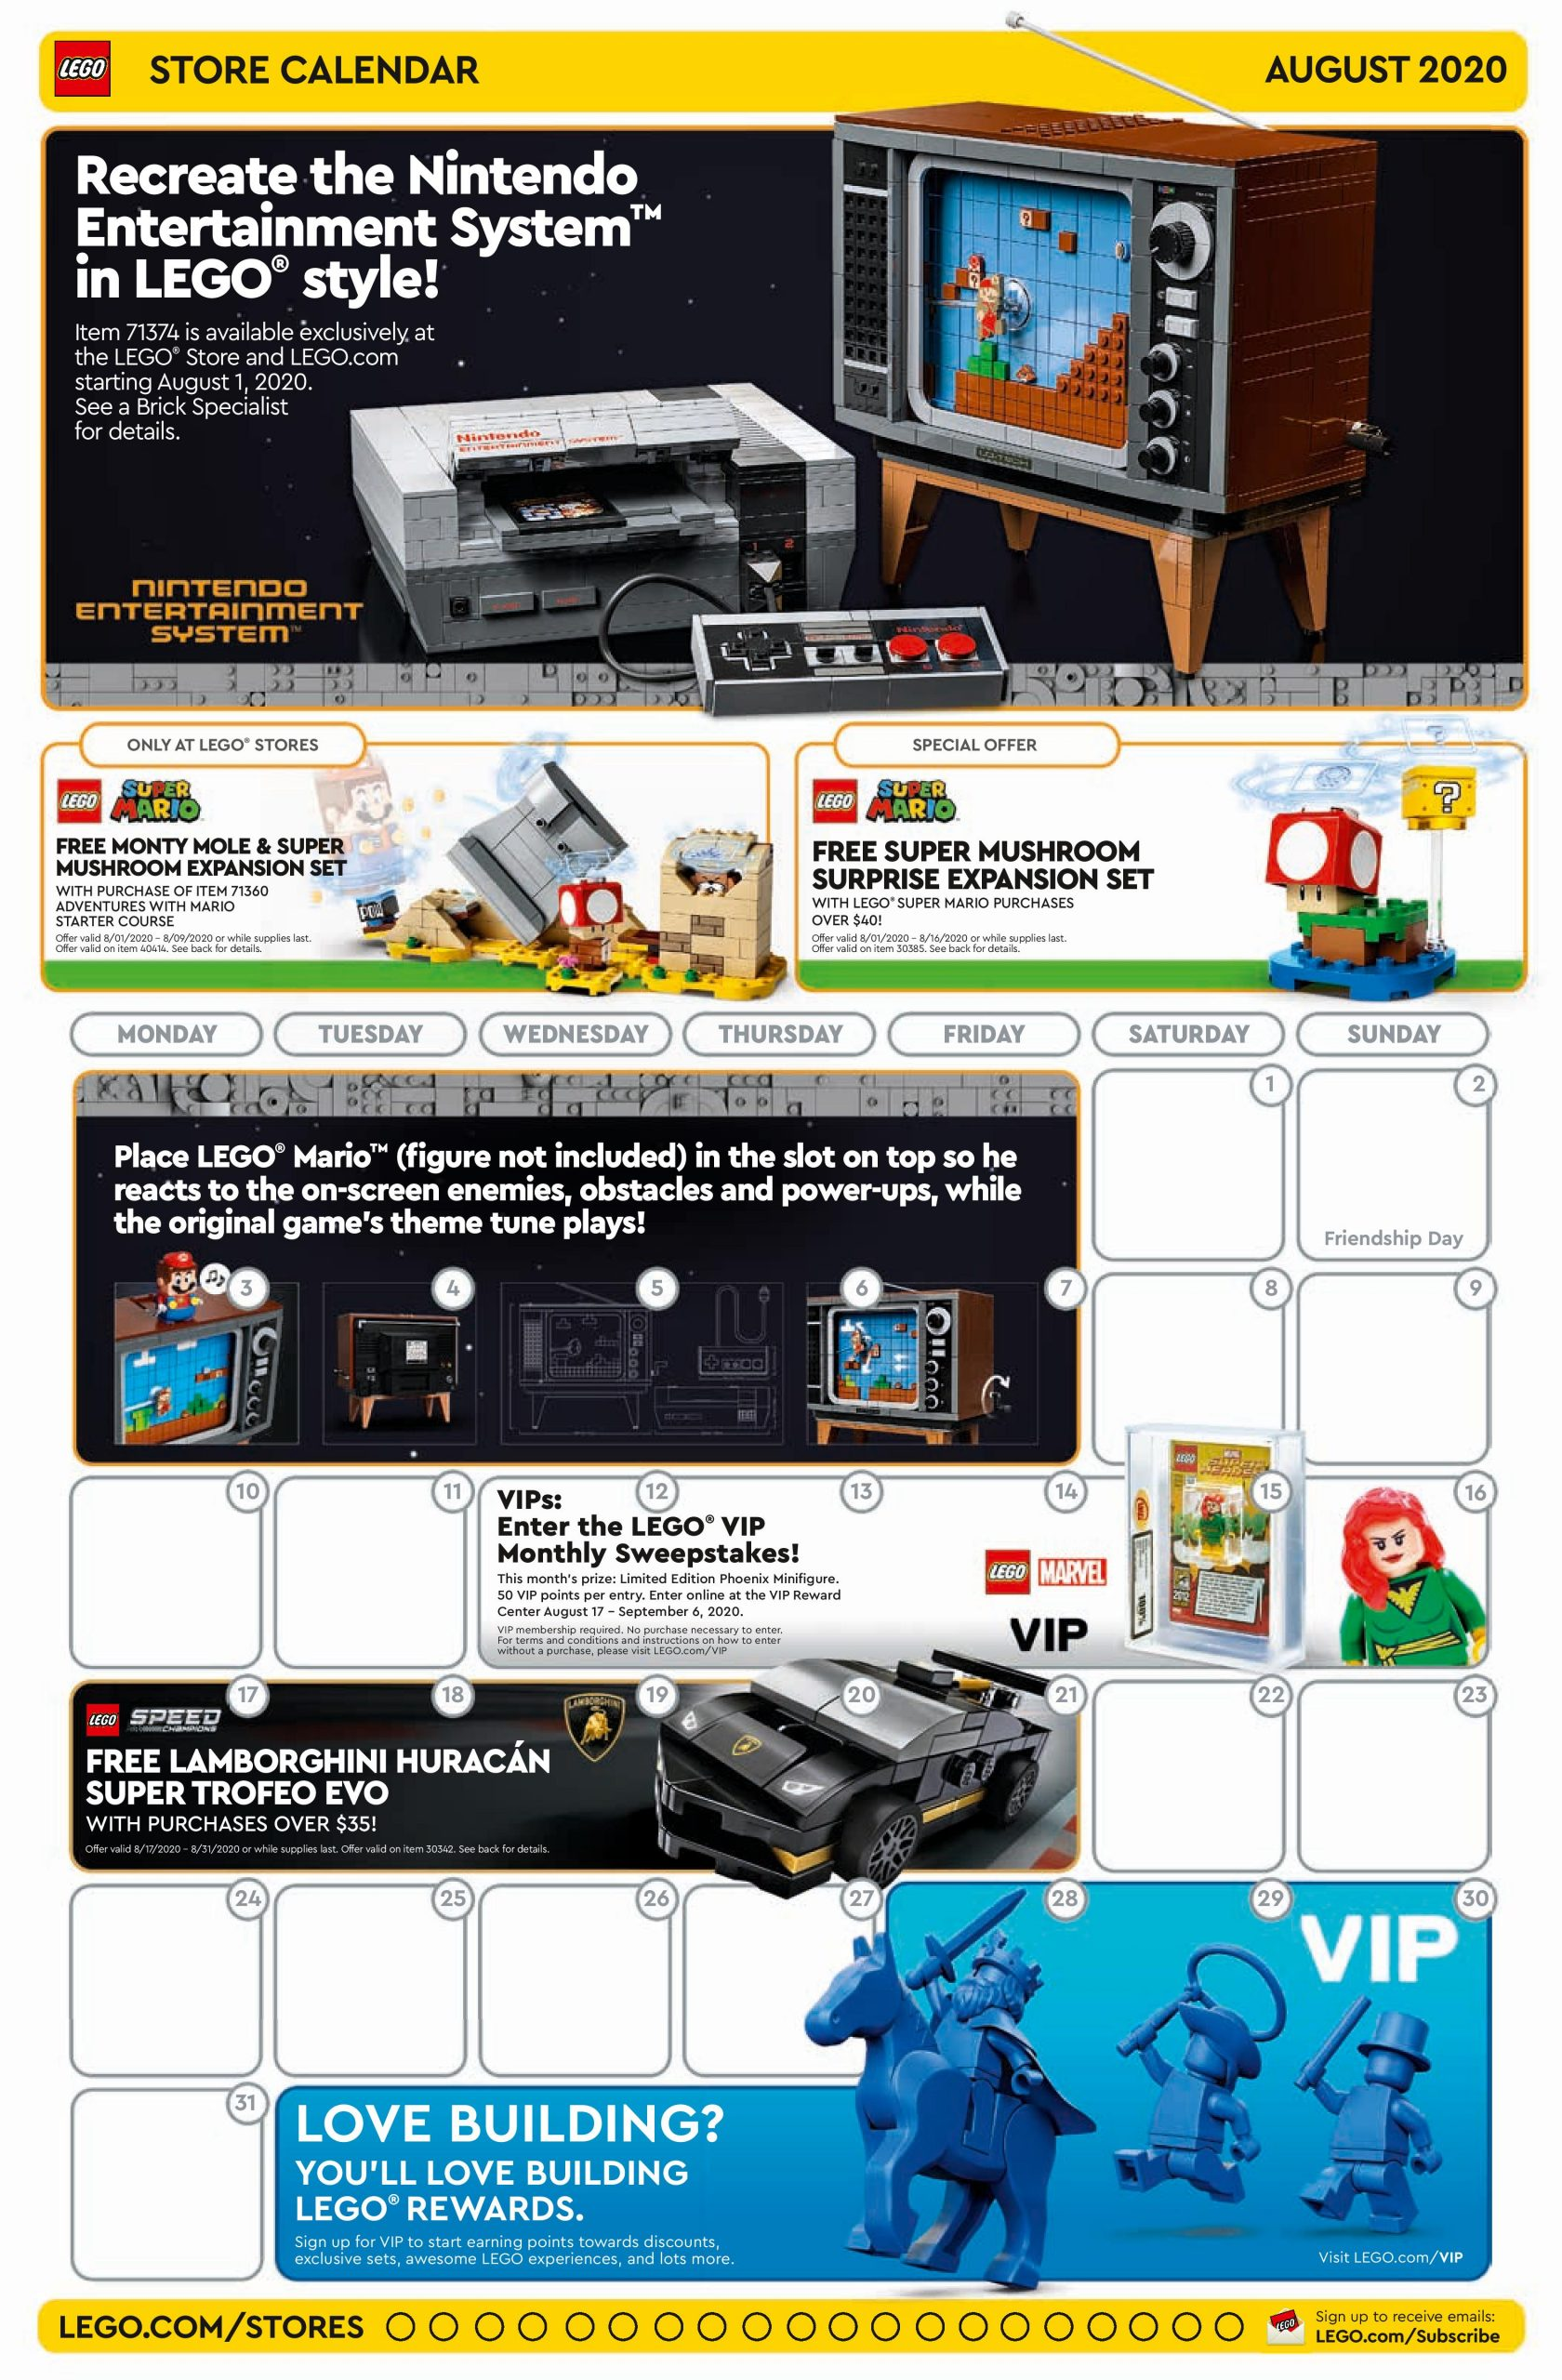 LEGO August 2020 Store Calendar Promotions & Events   The Brick Fan